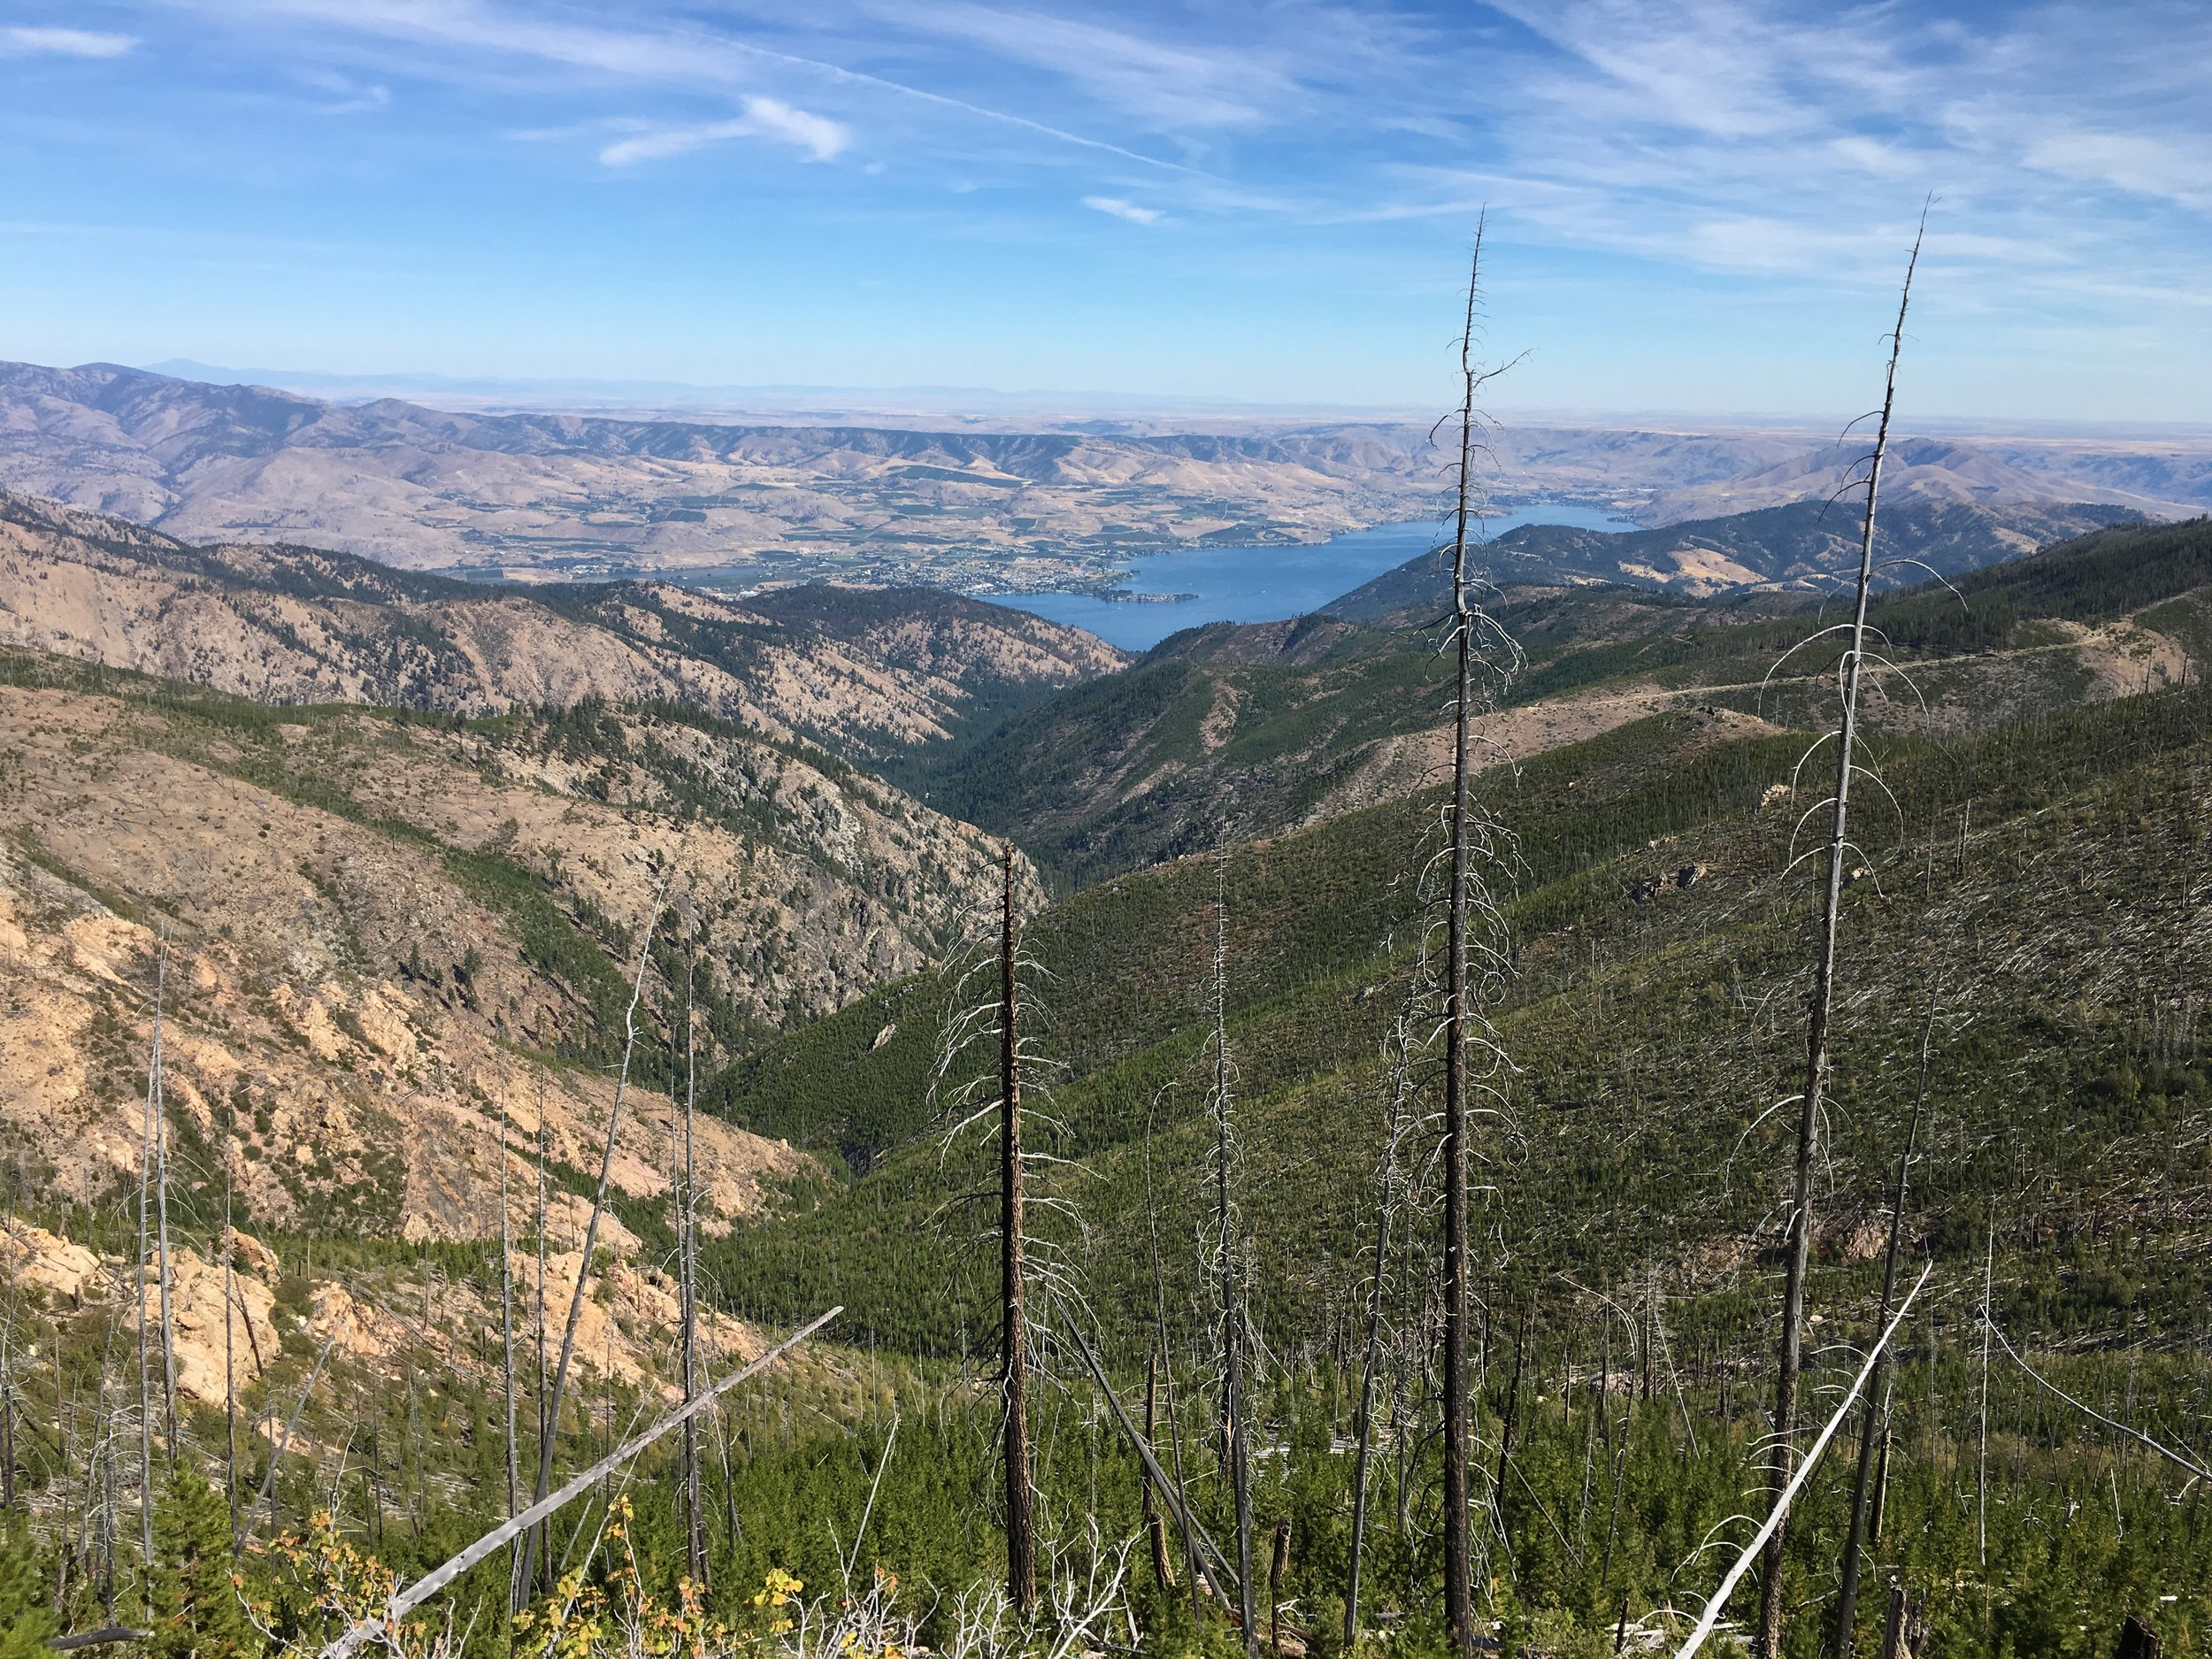 Looking east to Lake Chelan and the desert of eastern Washington.